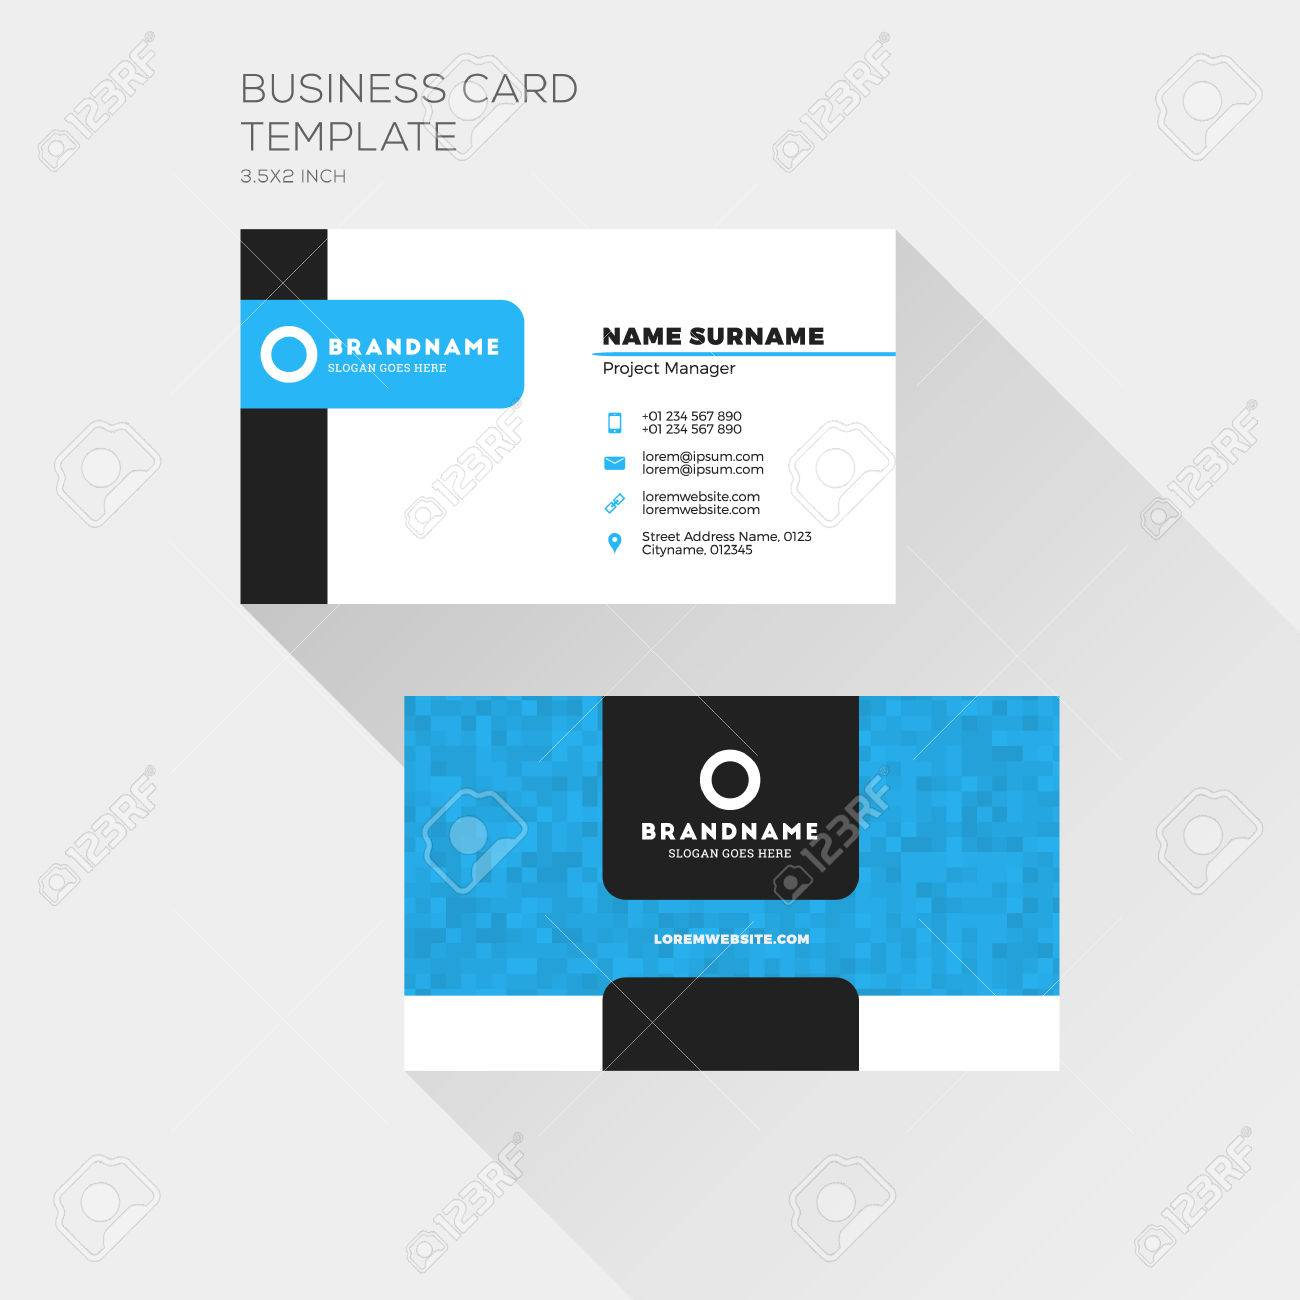 Corporate business card print template personal visiting card corporate business card print template personal visiting card with company logo clean flat design reheart Image collections